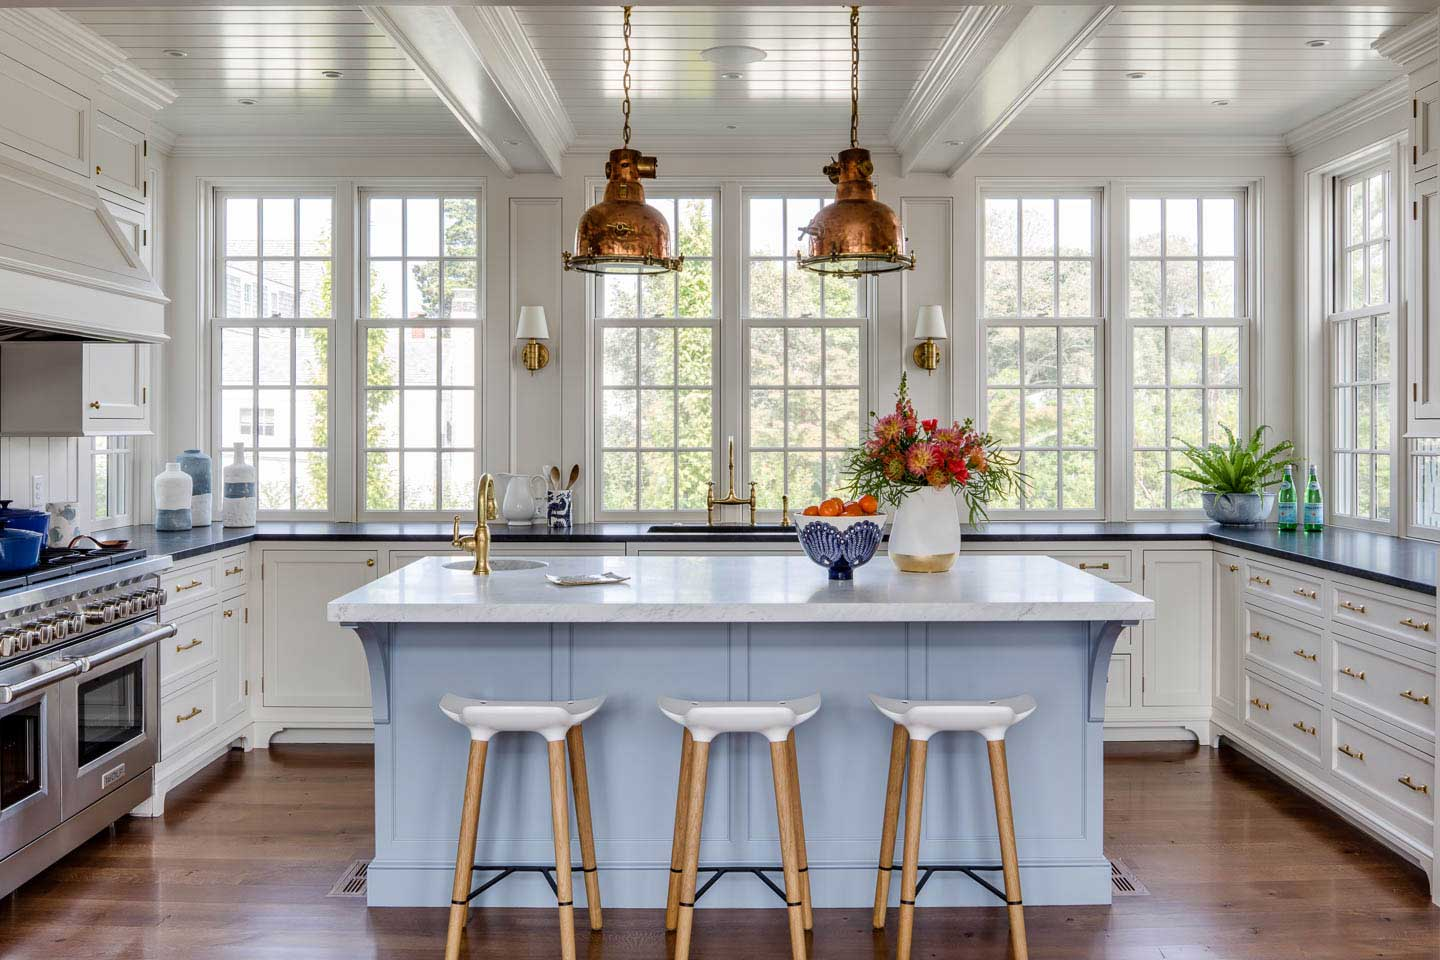 cape cod kitchen, light blue island, white cabinets, island seating, stools, marble counter, island sink, pendant lights, island lighting, copper lights, shiplap ceiling, wall of windows